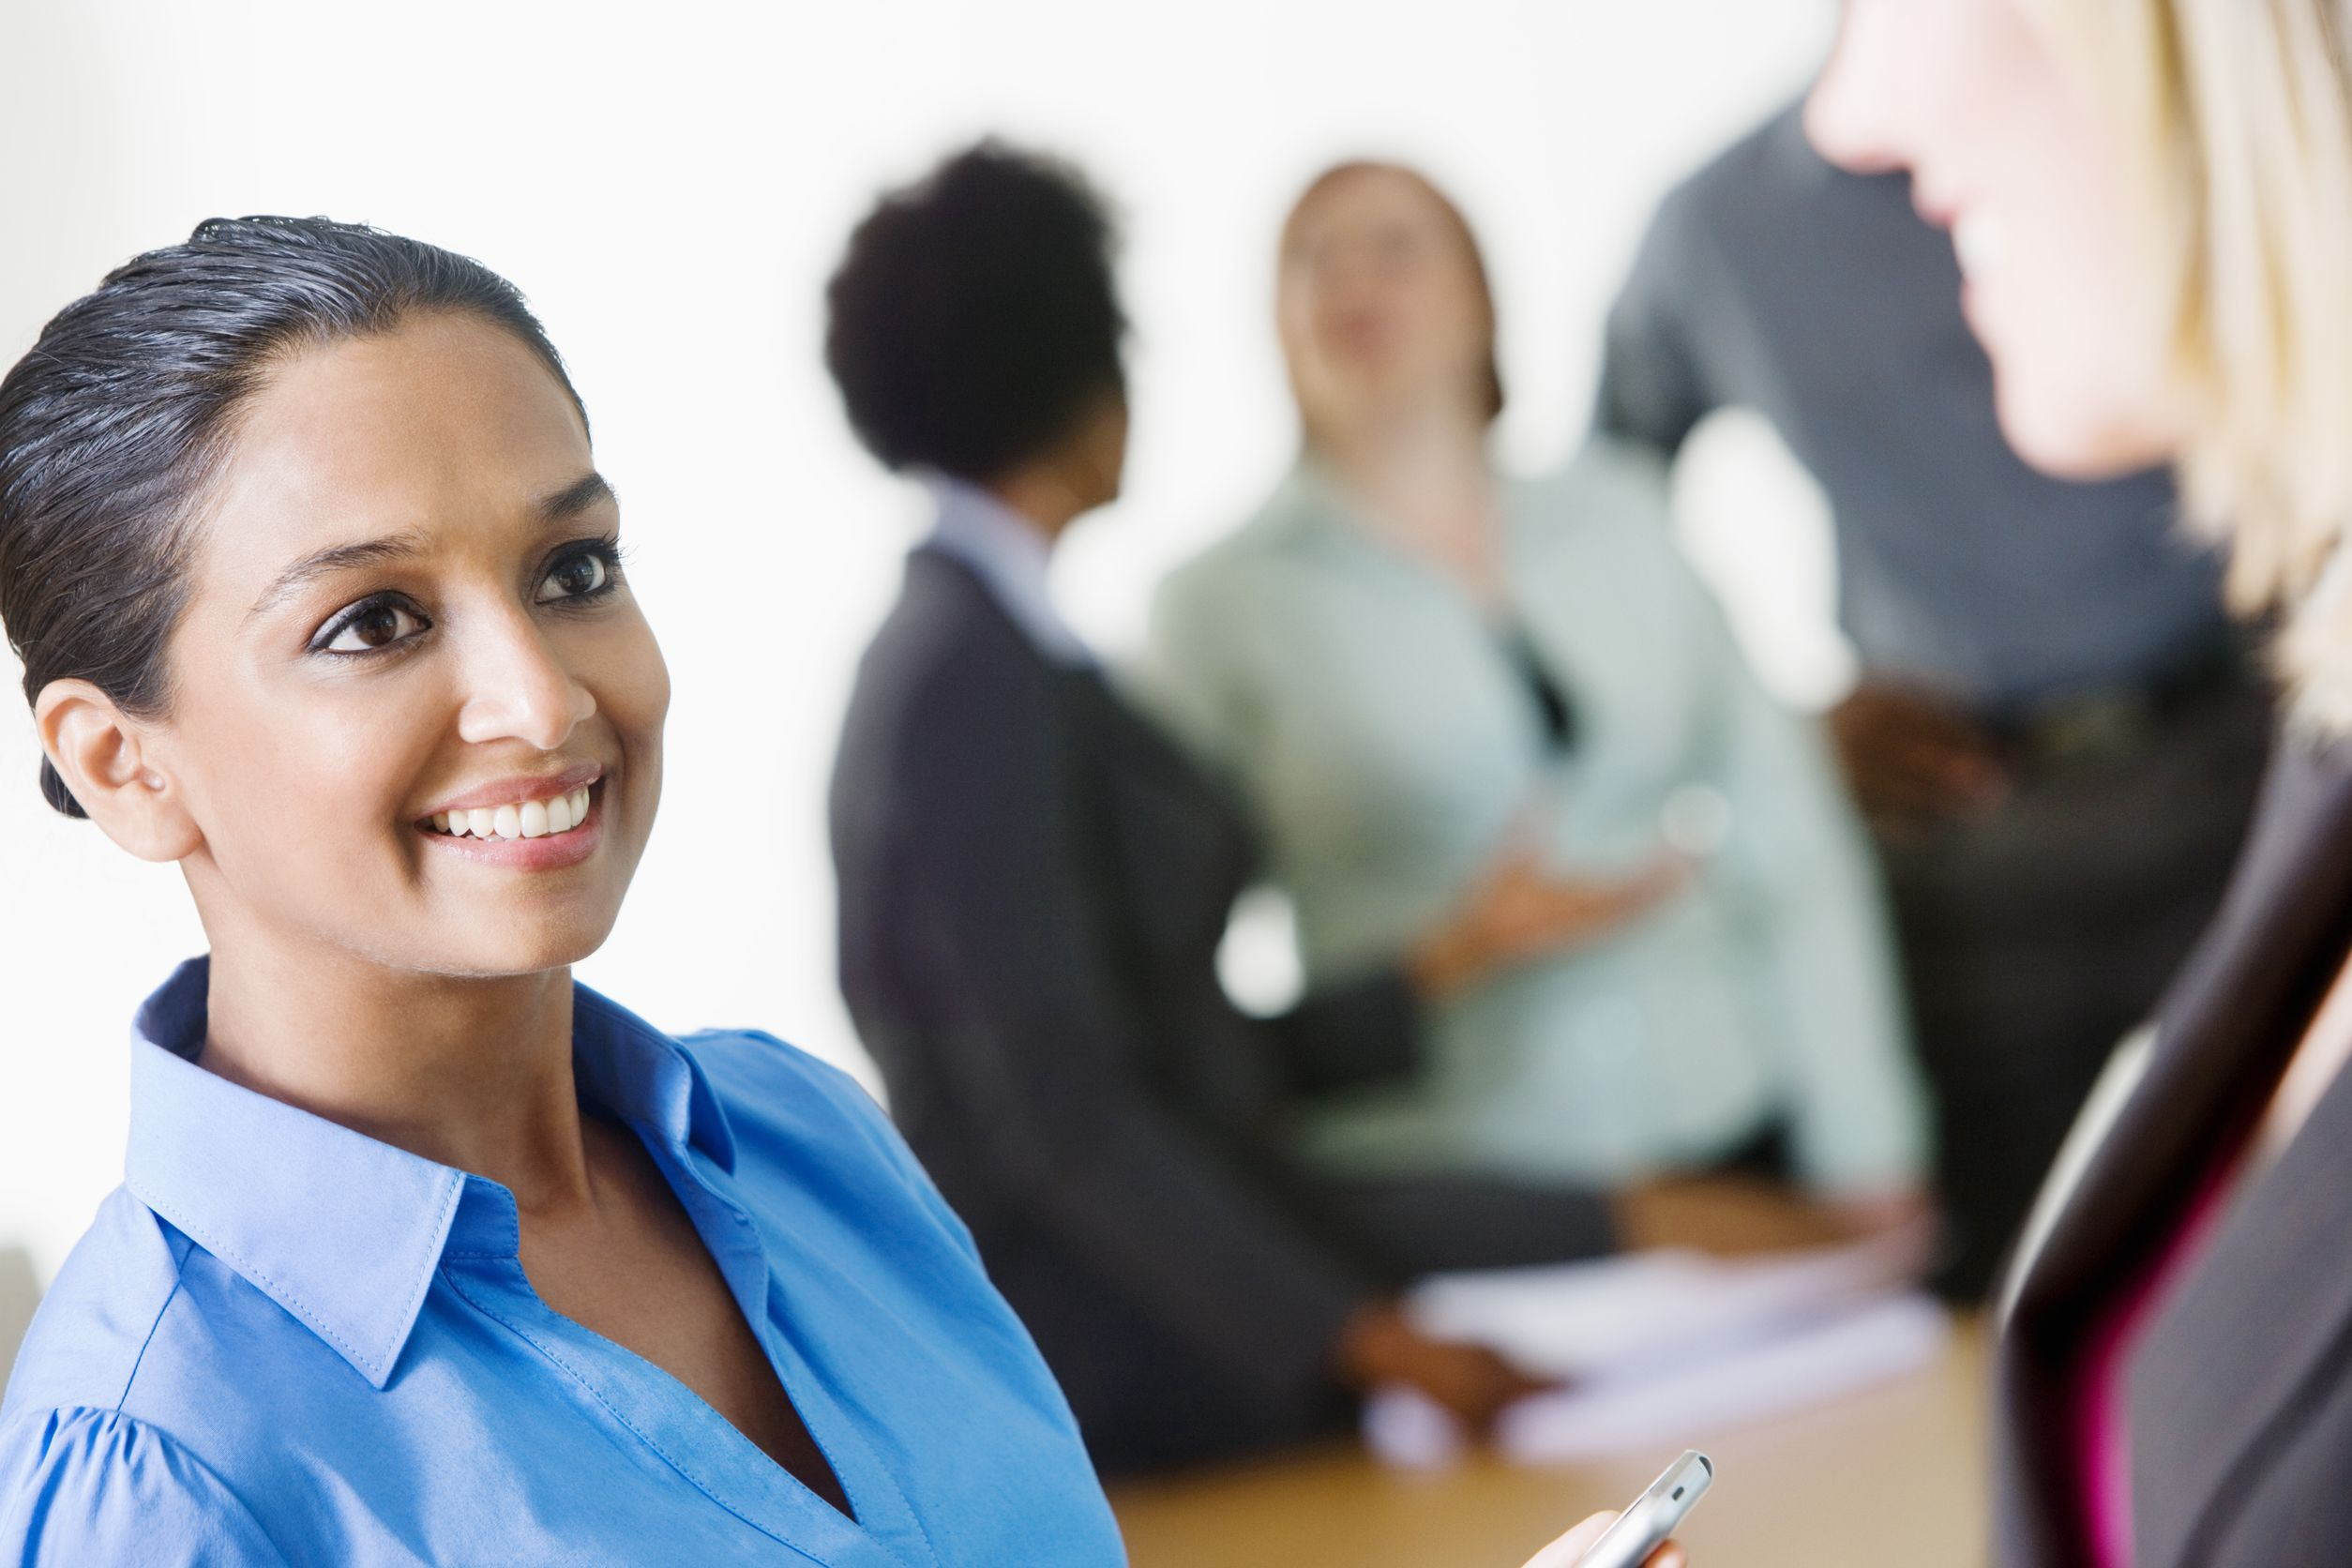 Running a successful cultural training course